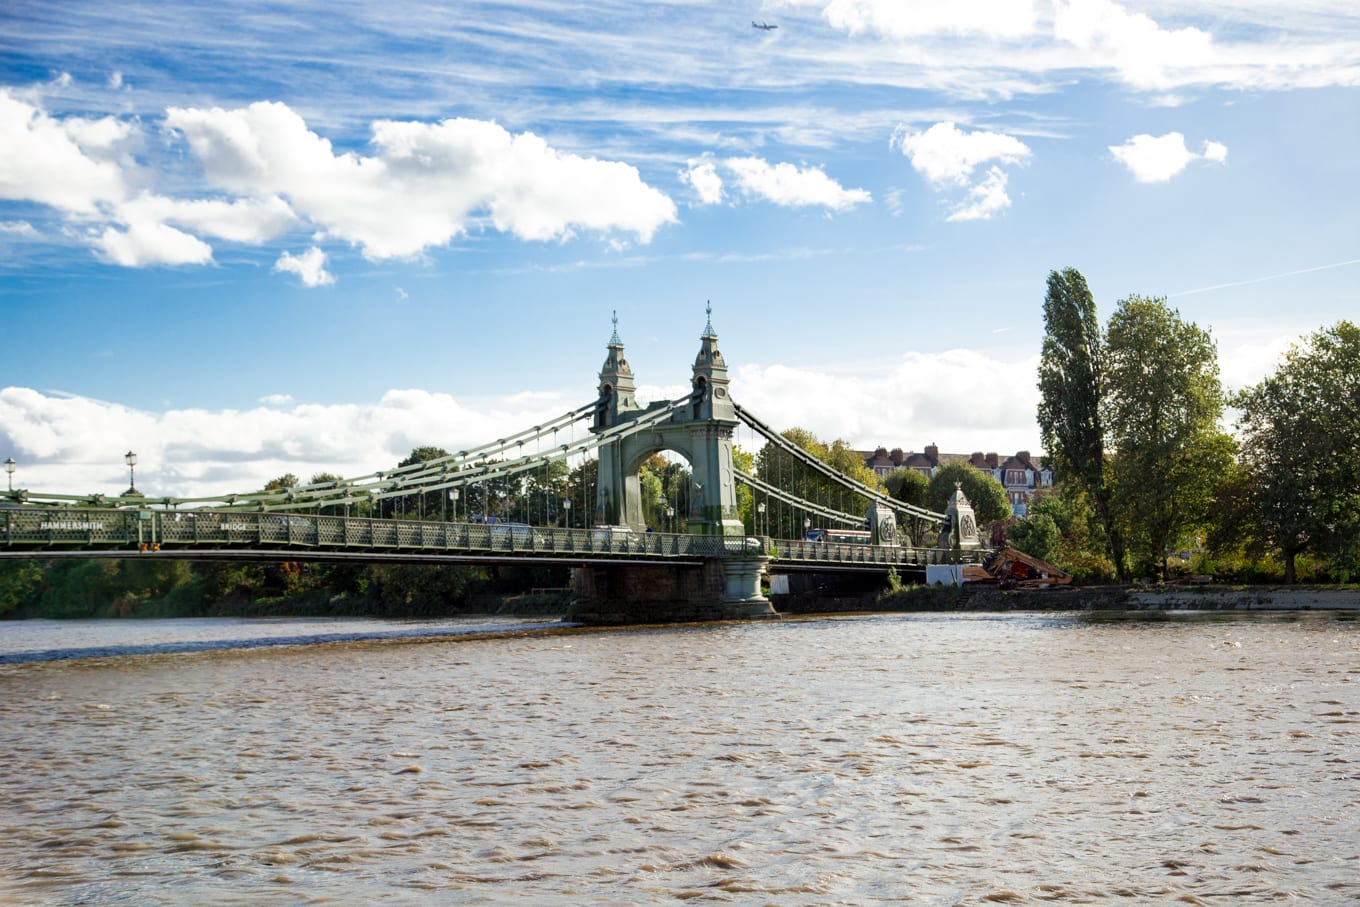 Photo of the Hammersmith Bridge over the Thames River in London, England